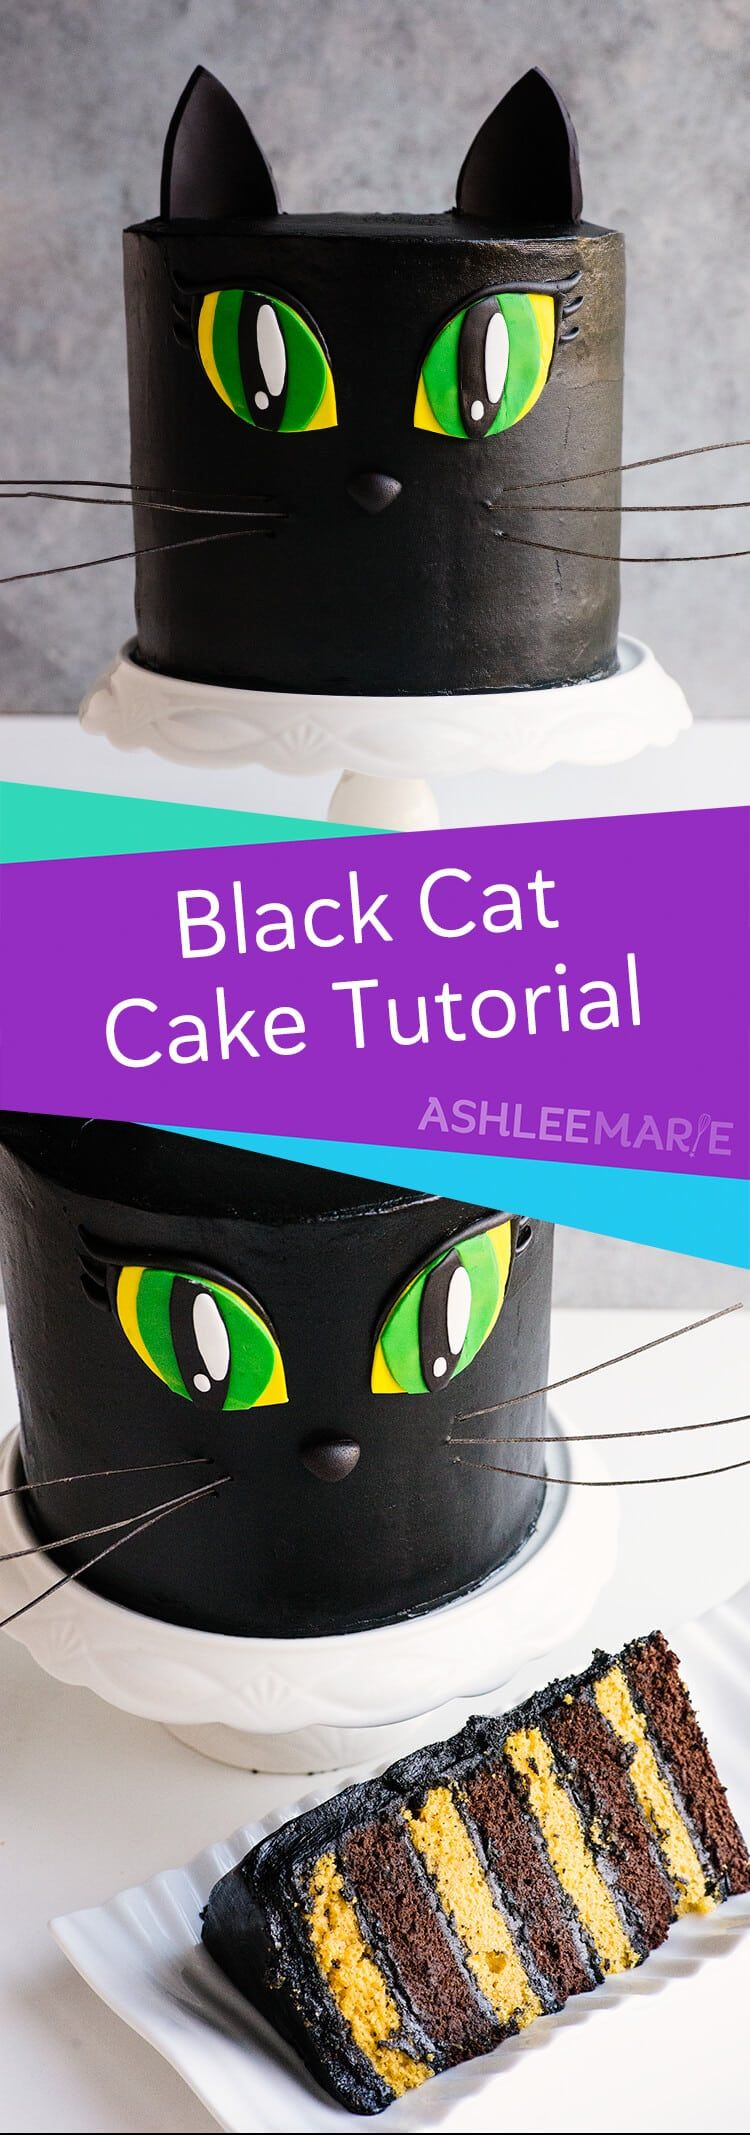 Black Cat Cake Video Tutorial - with Pumpkin and Chocolate Cake recipes #halloweencakes